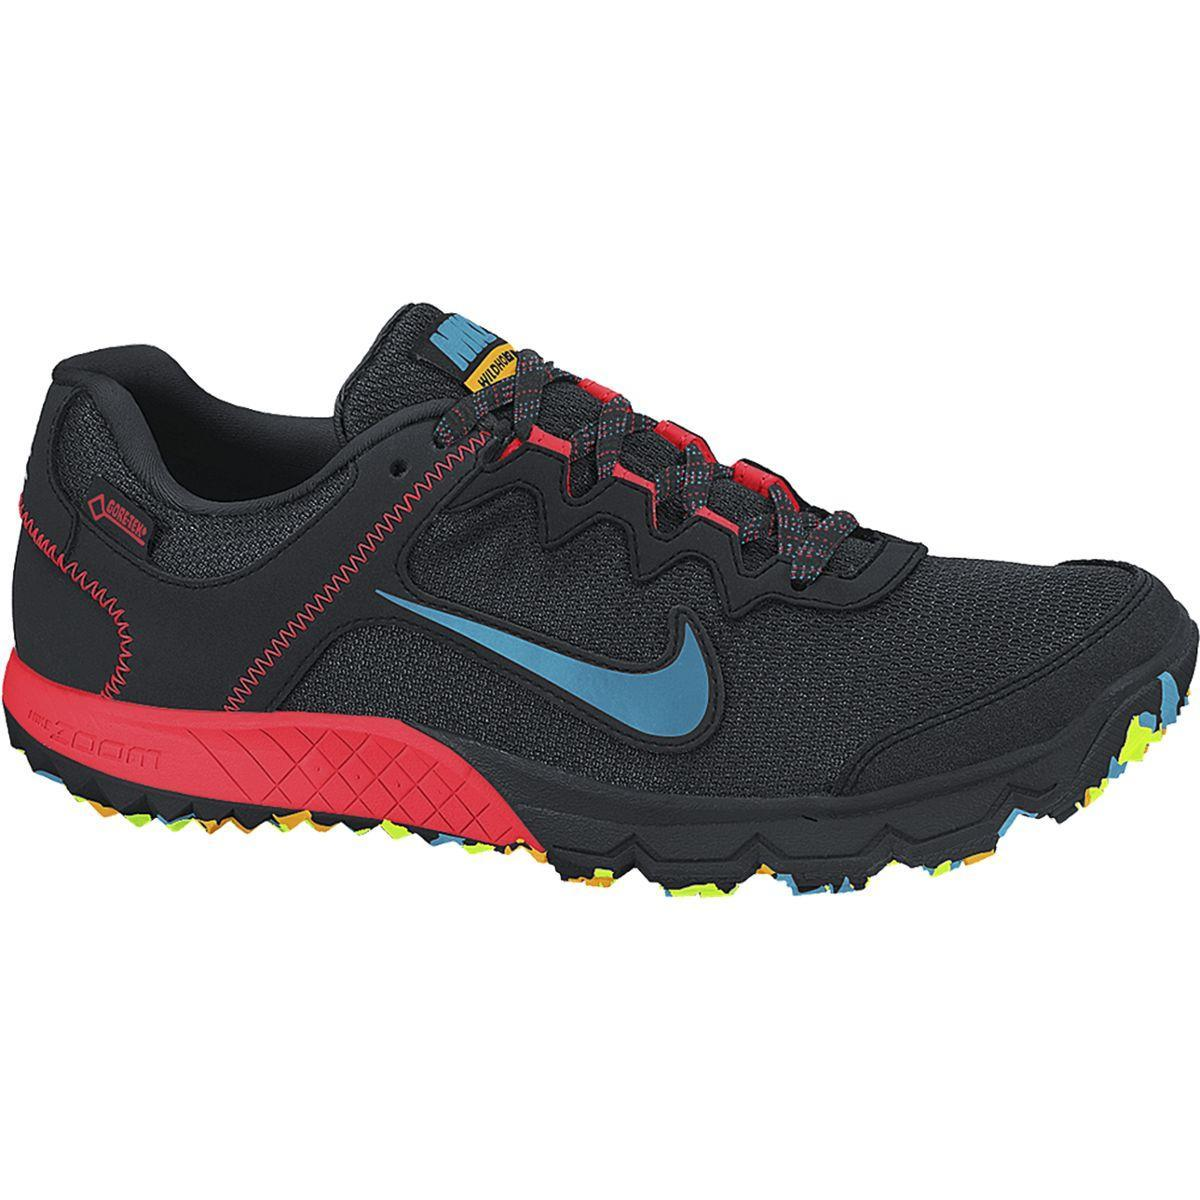 5f3b4cab8dc Nike Mens Zoom Wildhorse GTX Trail Running Shoes - Black Bright Crimson -  Tennisnuts.com